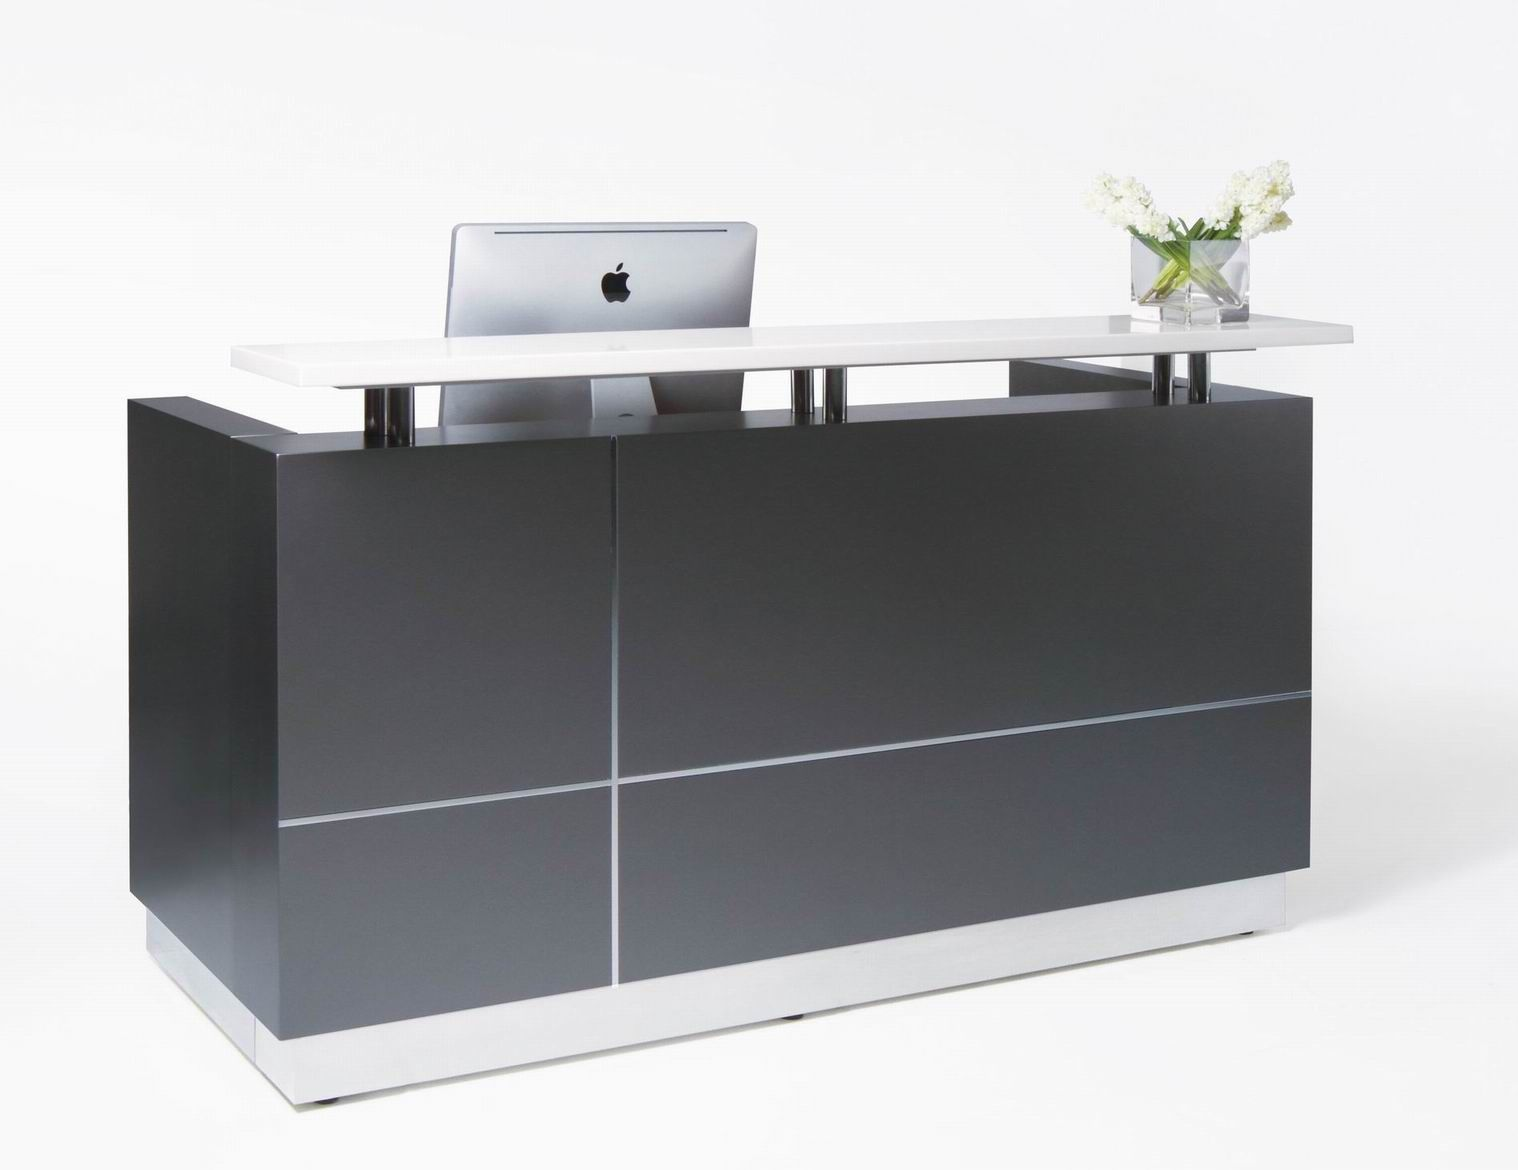 office reception counter 1000 images about office reception on pinterest office reception office reception desks and boss office products plexiglass reception